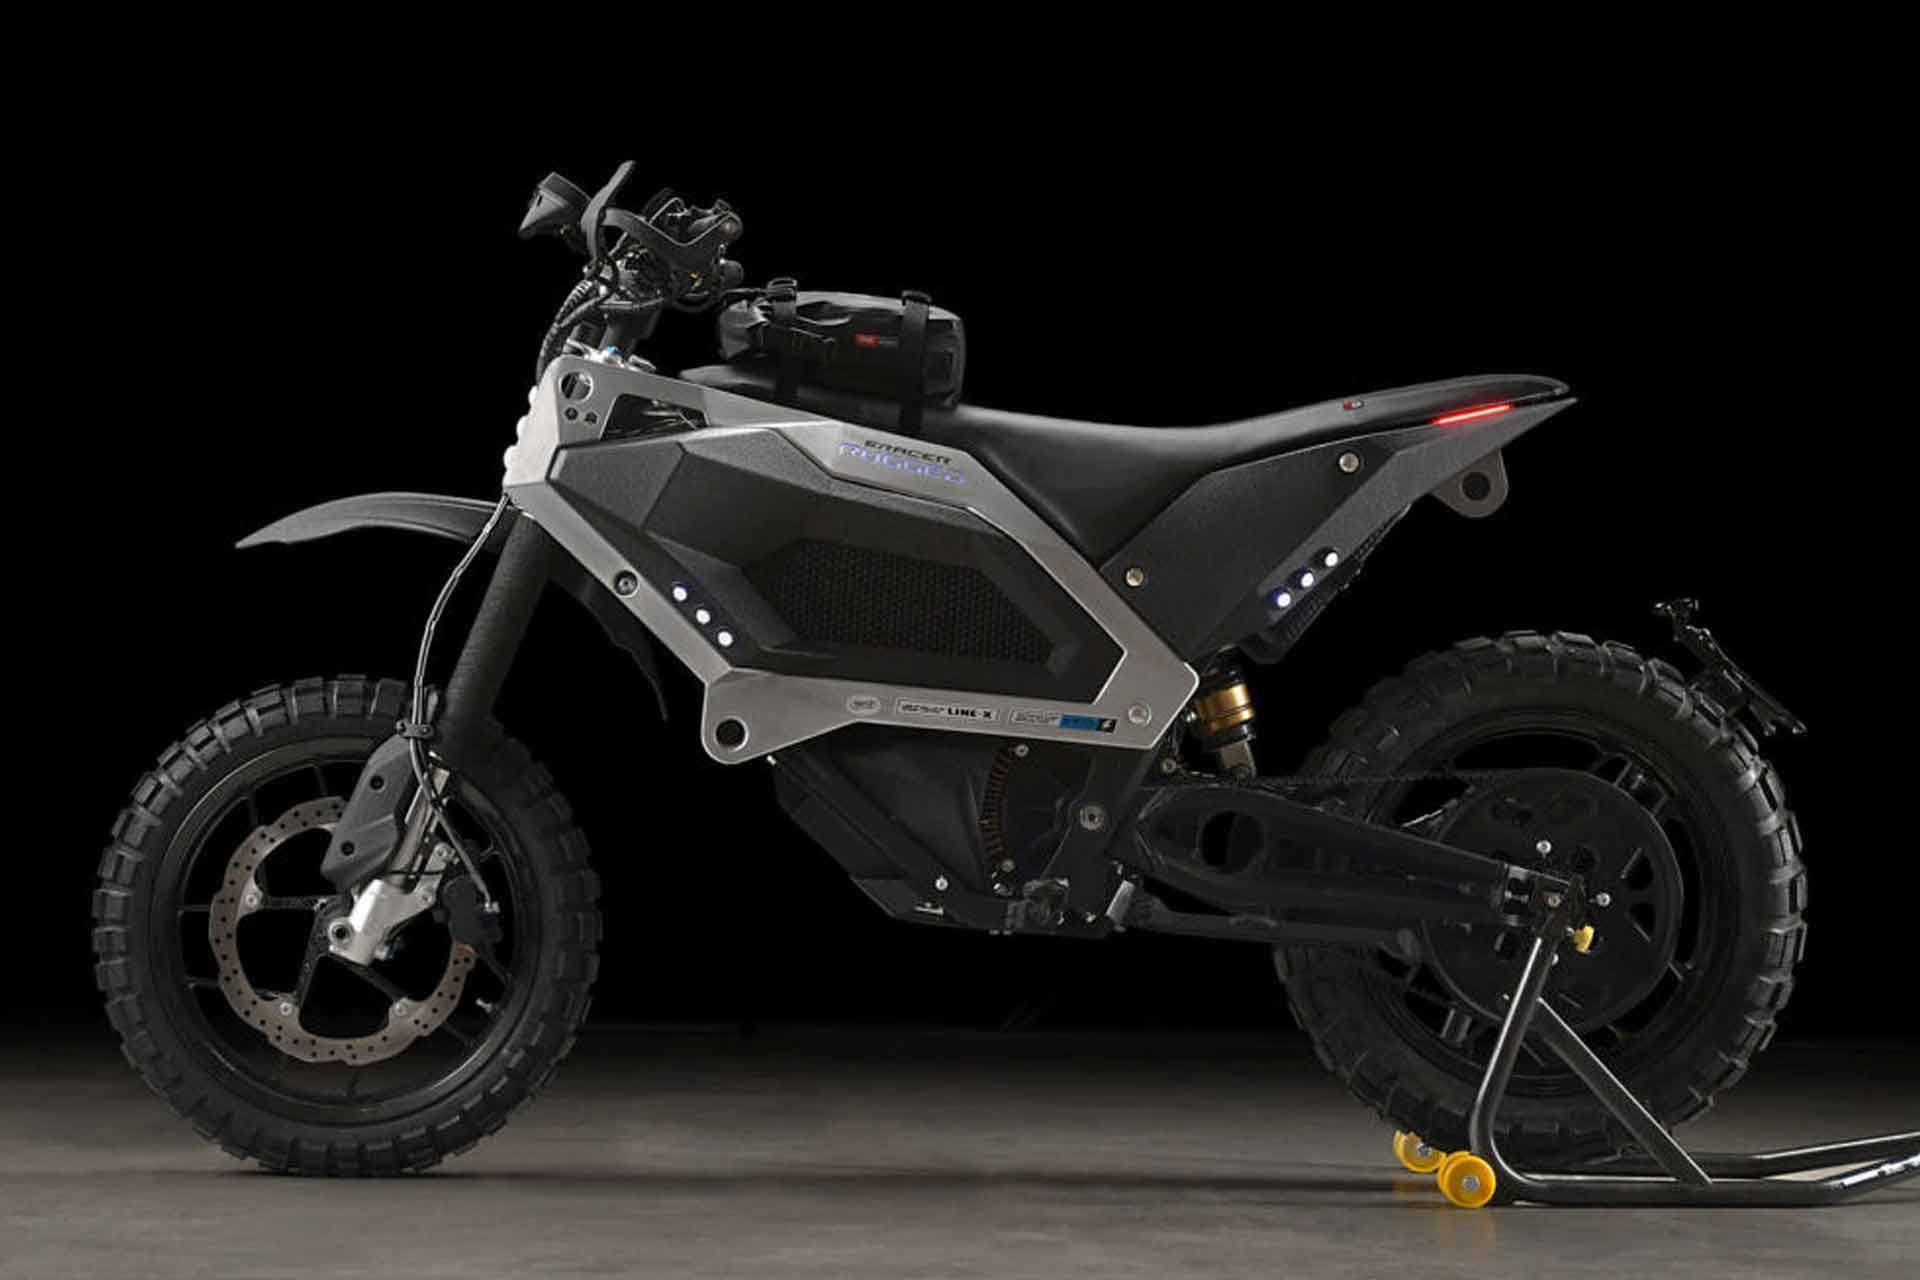 E-Racer Rugged Motorcycle